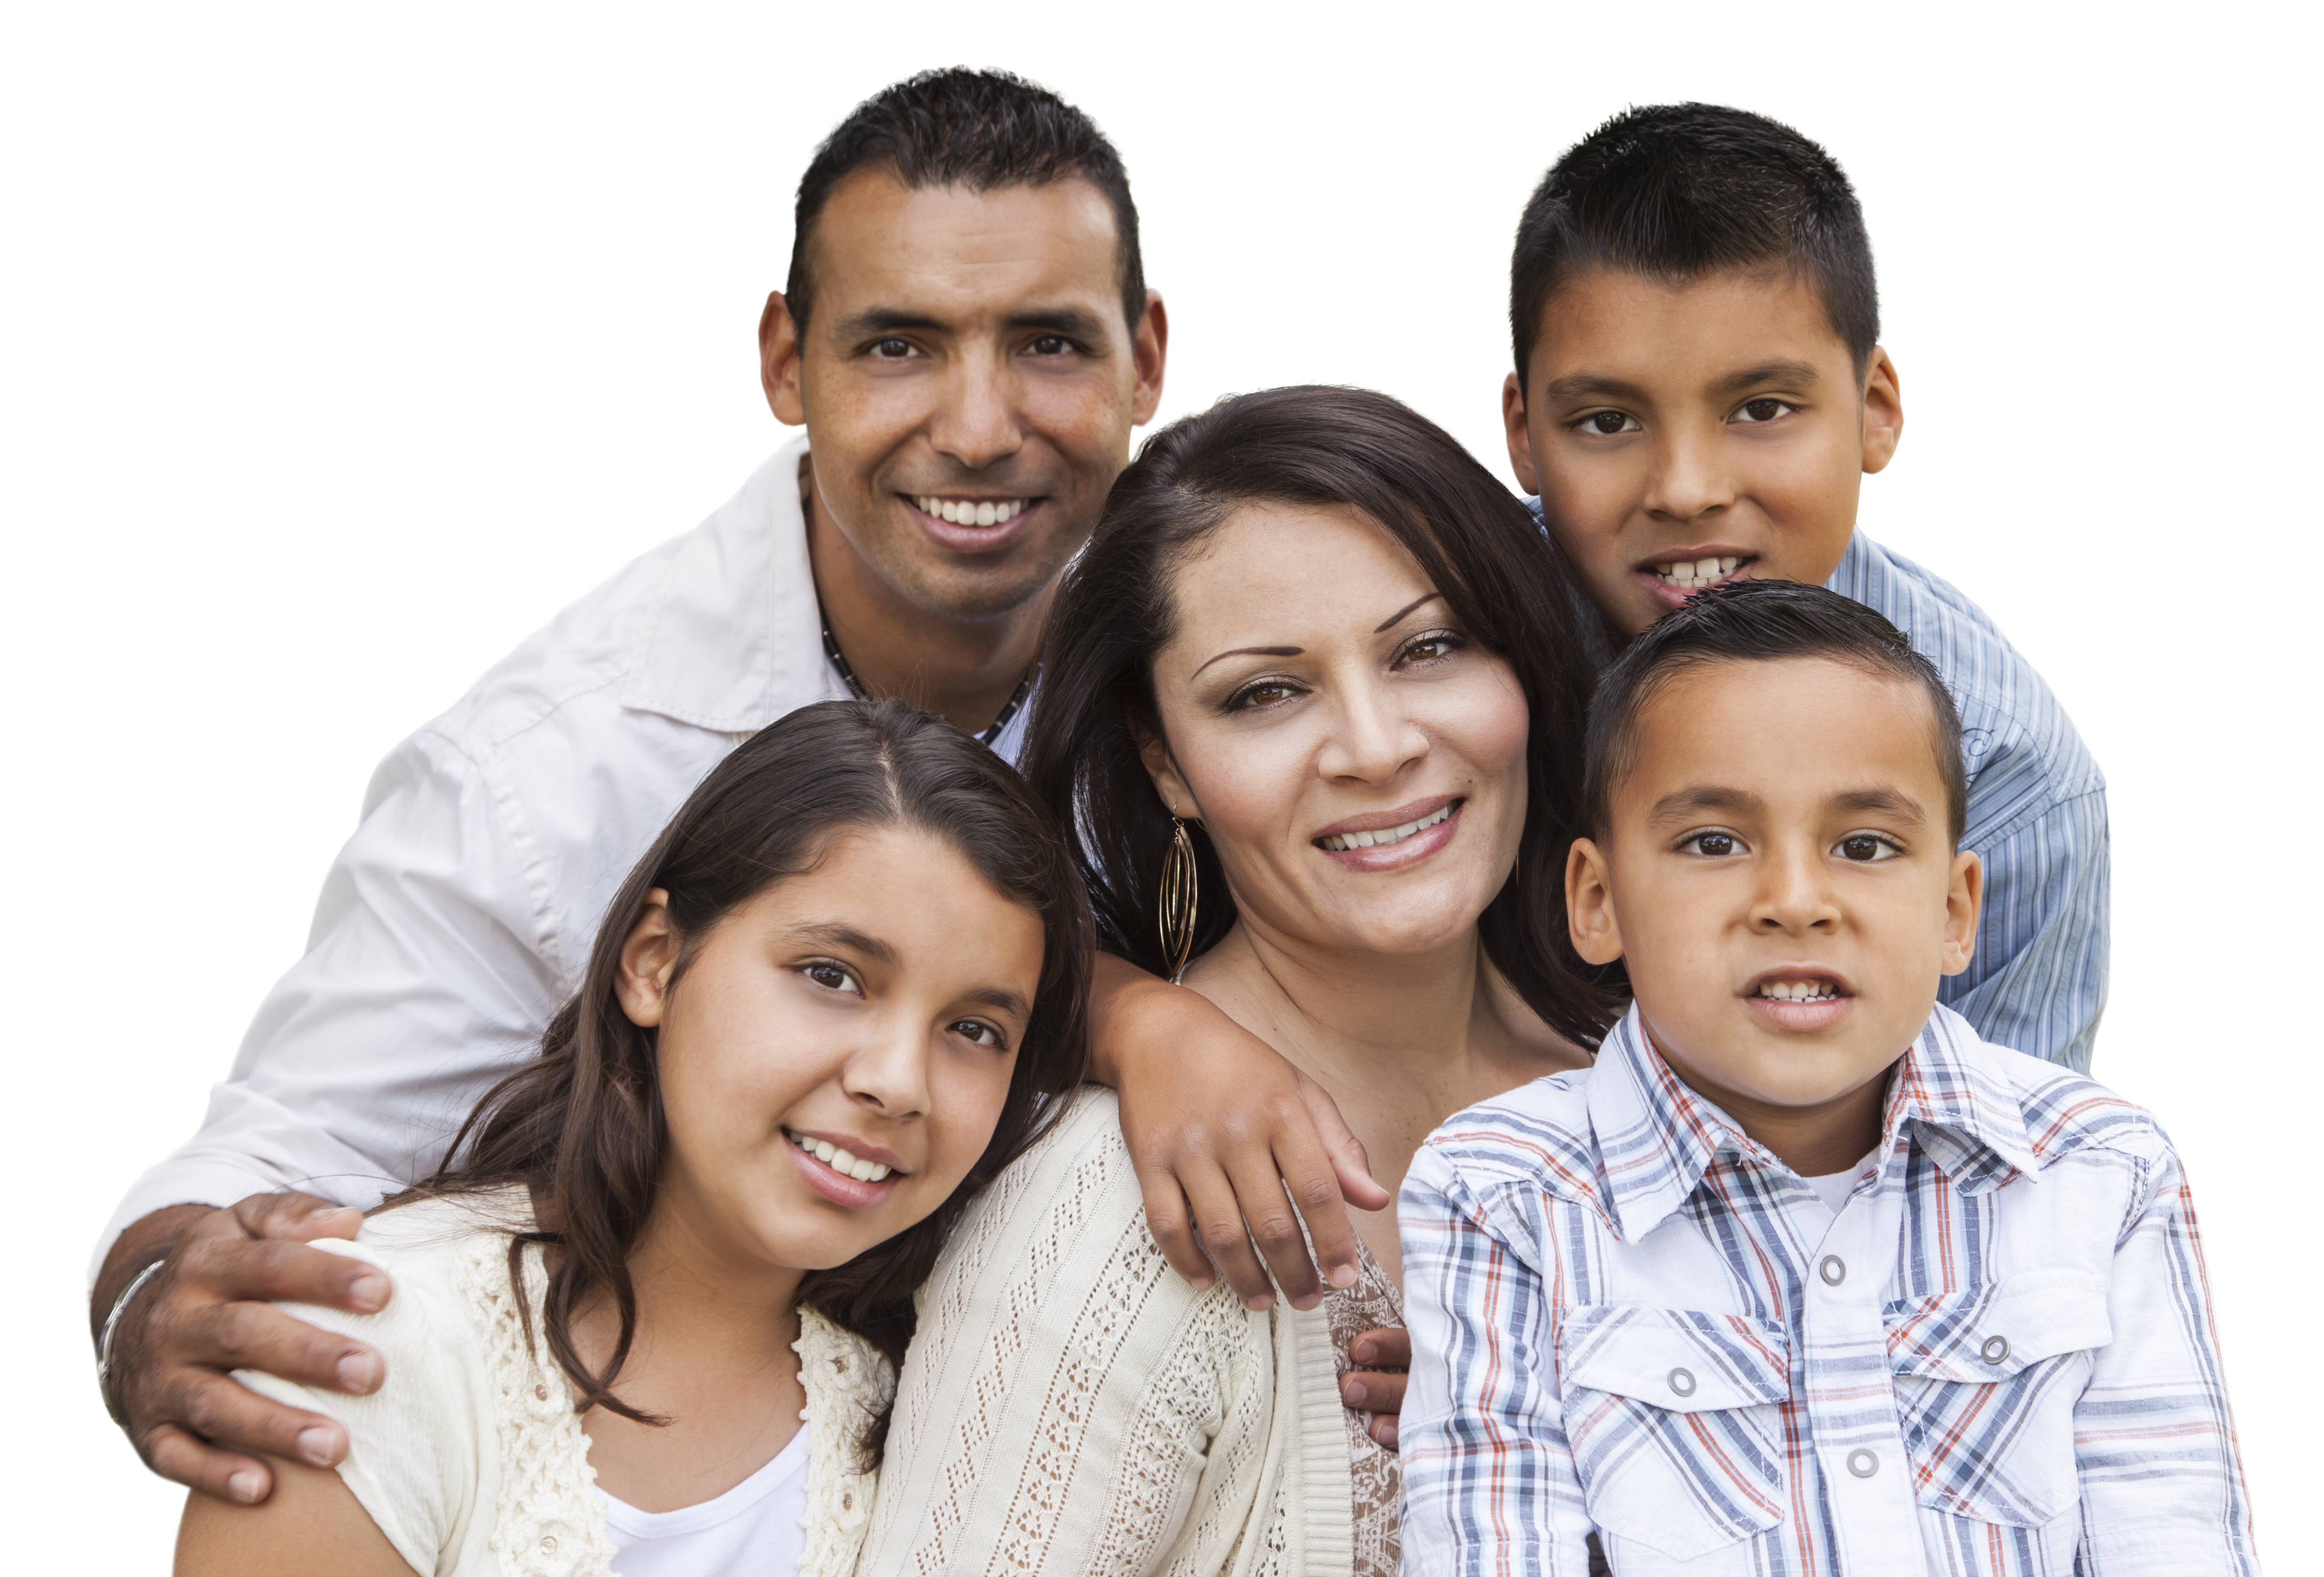 group of smiling family dental patients